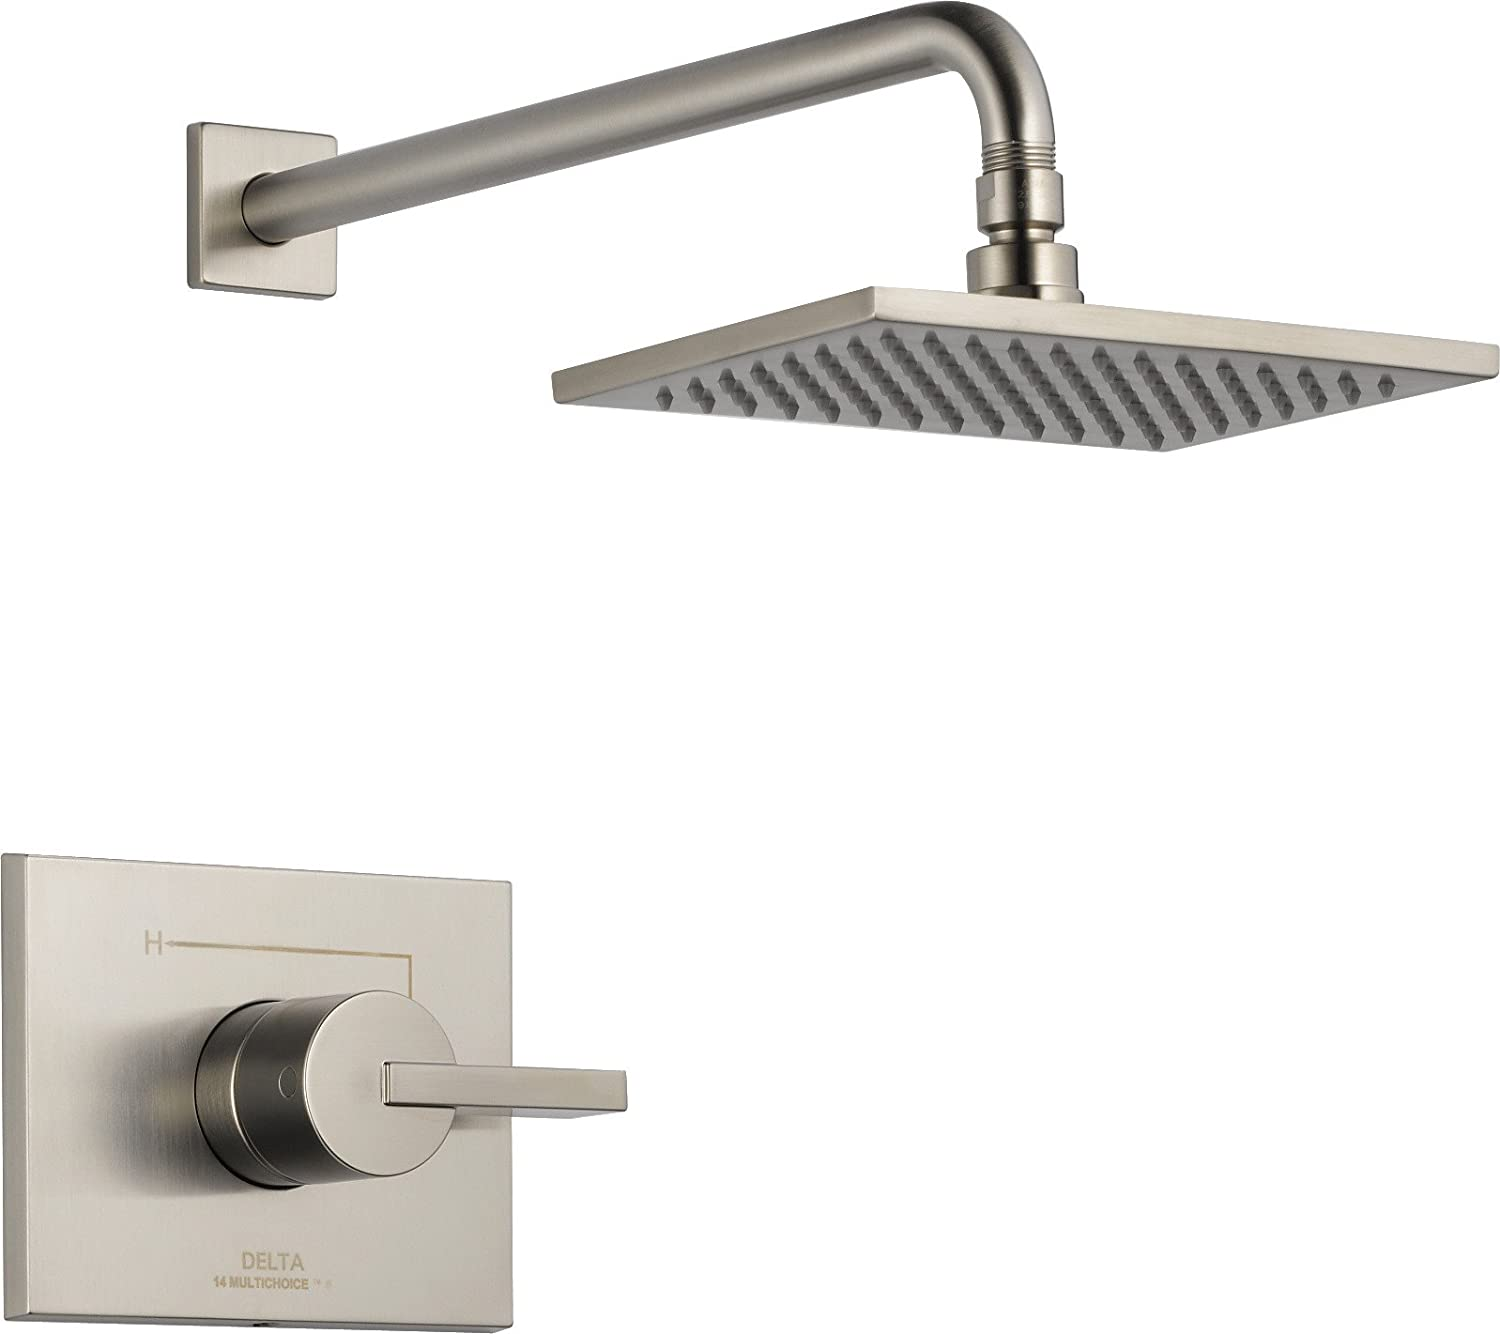 Delta Faucet Vero 14 Series Single-Function Shower Trim Kit with Single-Spray Touch-Clean Rain Shower Head, Stainless, 2.0 GPM Water Flow, T14253-SS-WE (Valve Not Included)